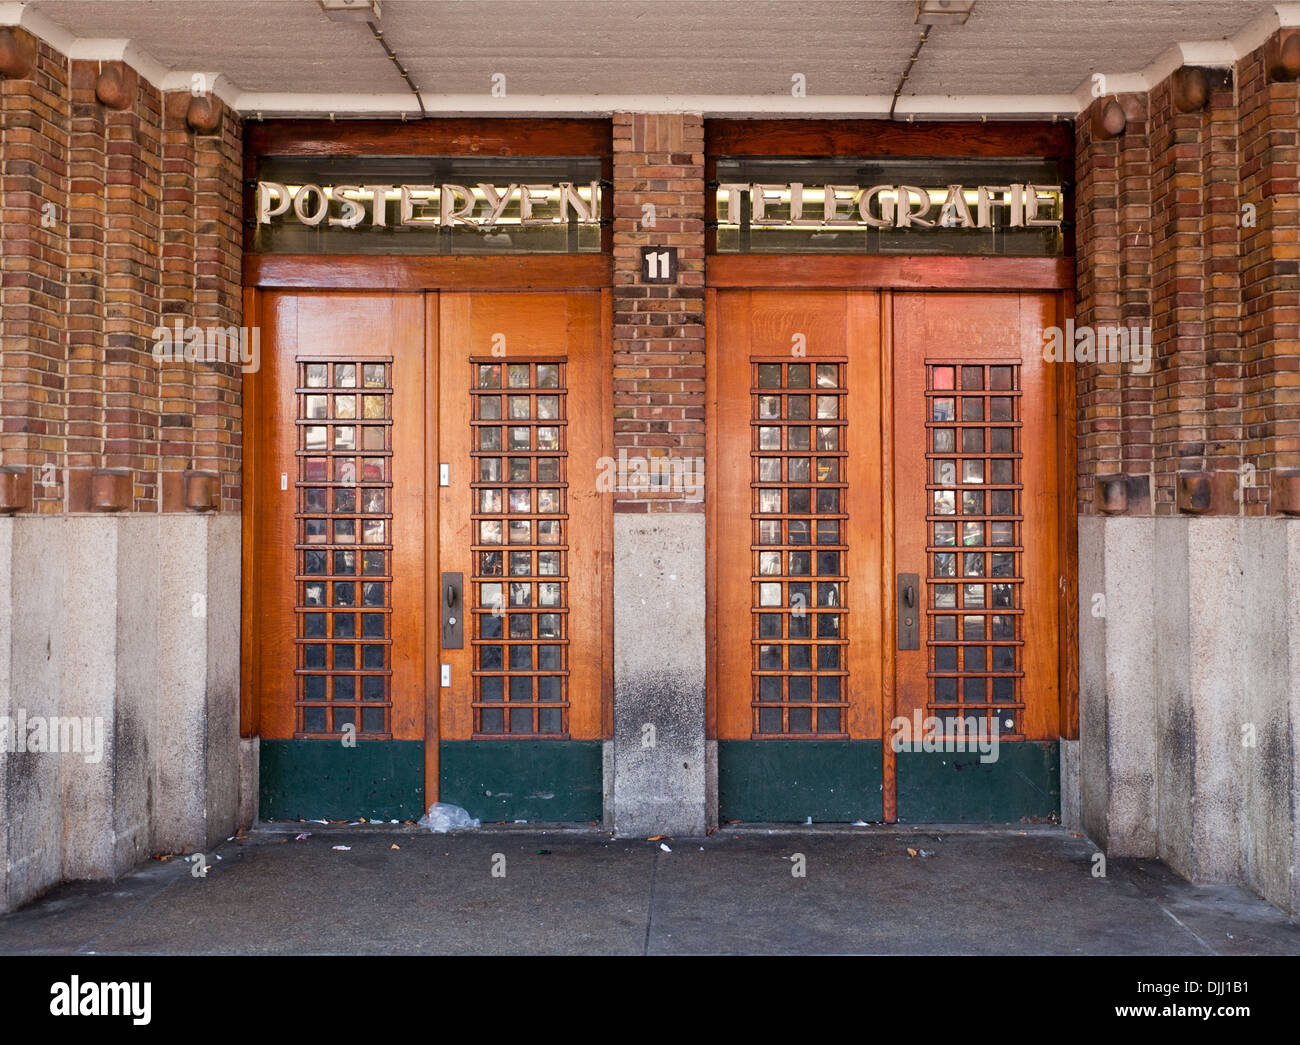 Old post office and telephone exchange in Utrecht (No longer used as such) - Stock Image